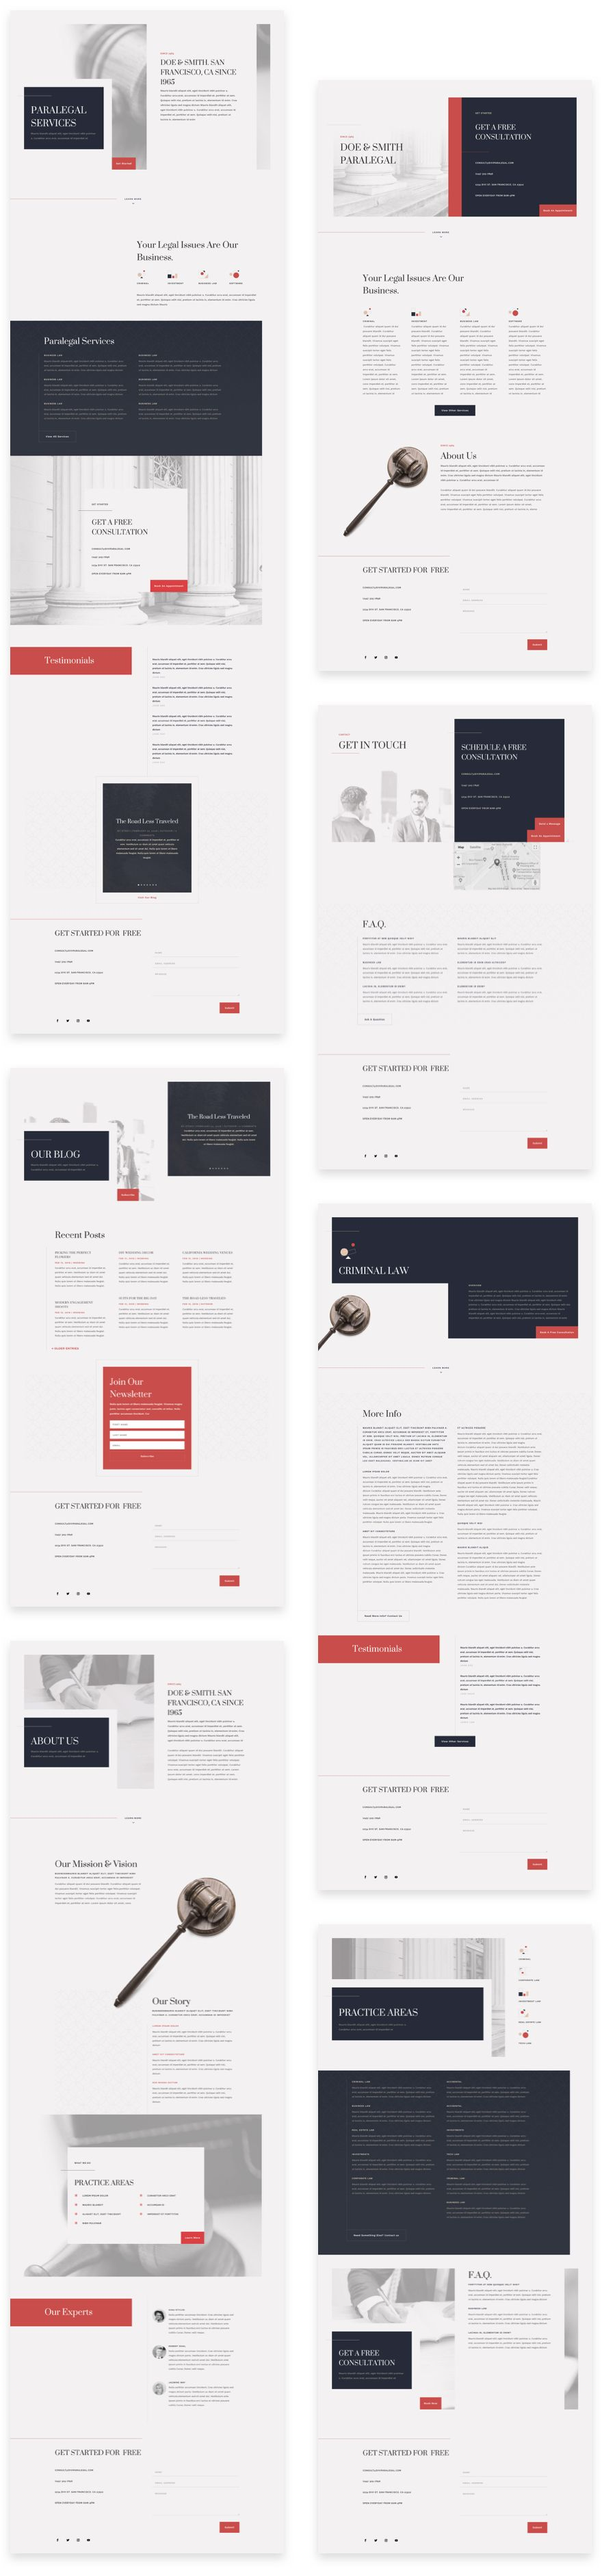 Paralegal Divi Layout Pack